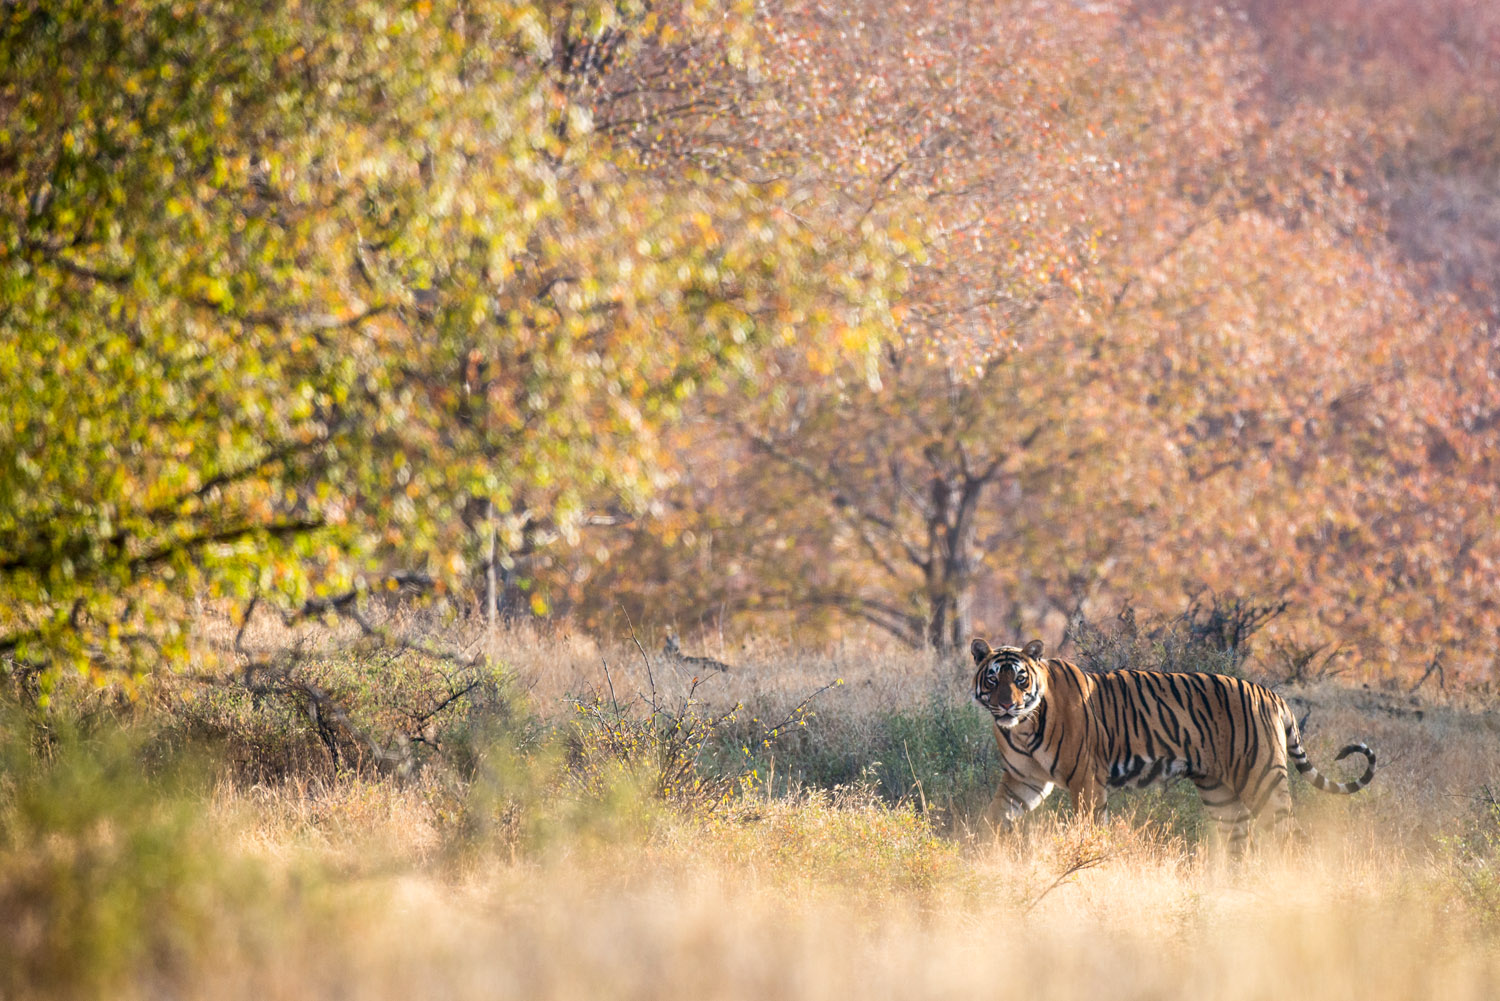 Bengal tiger in autumnal forest, Ranthambhore National Park, Rajasthan, India